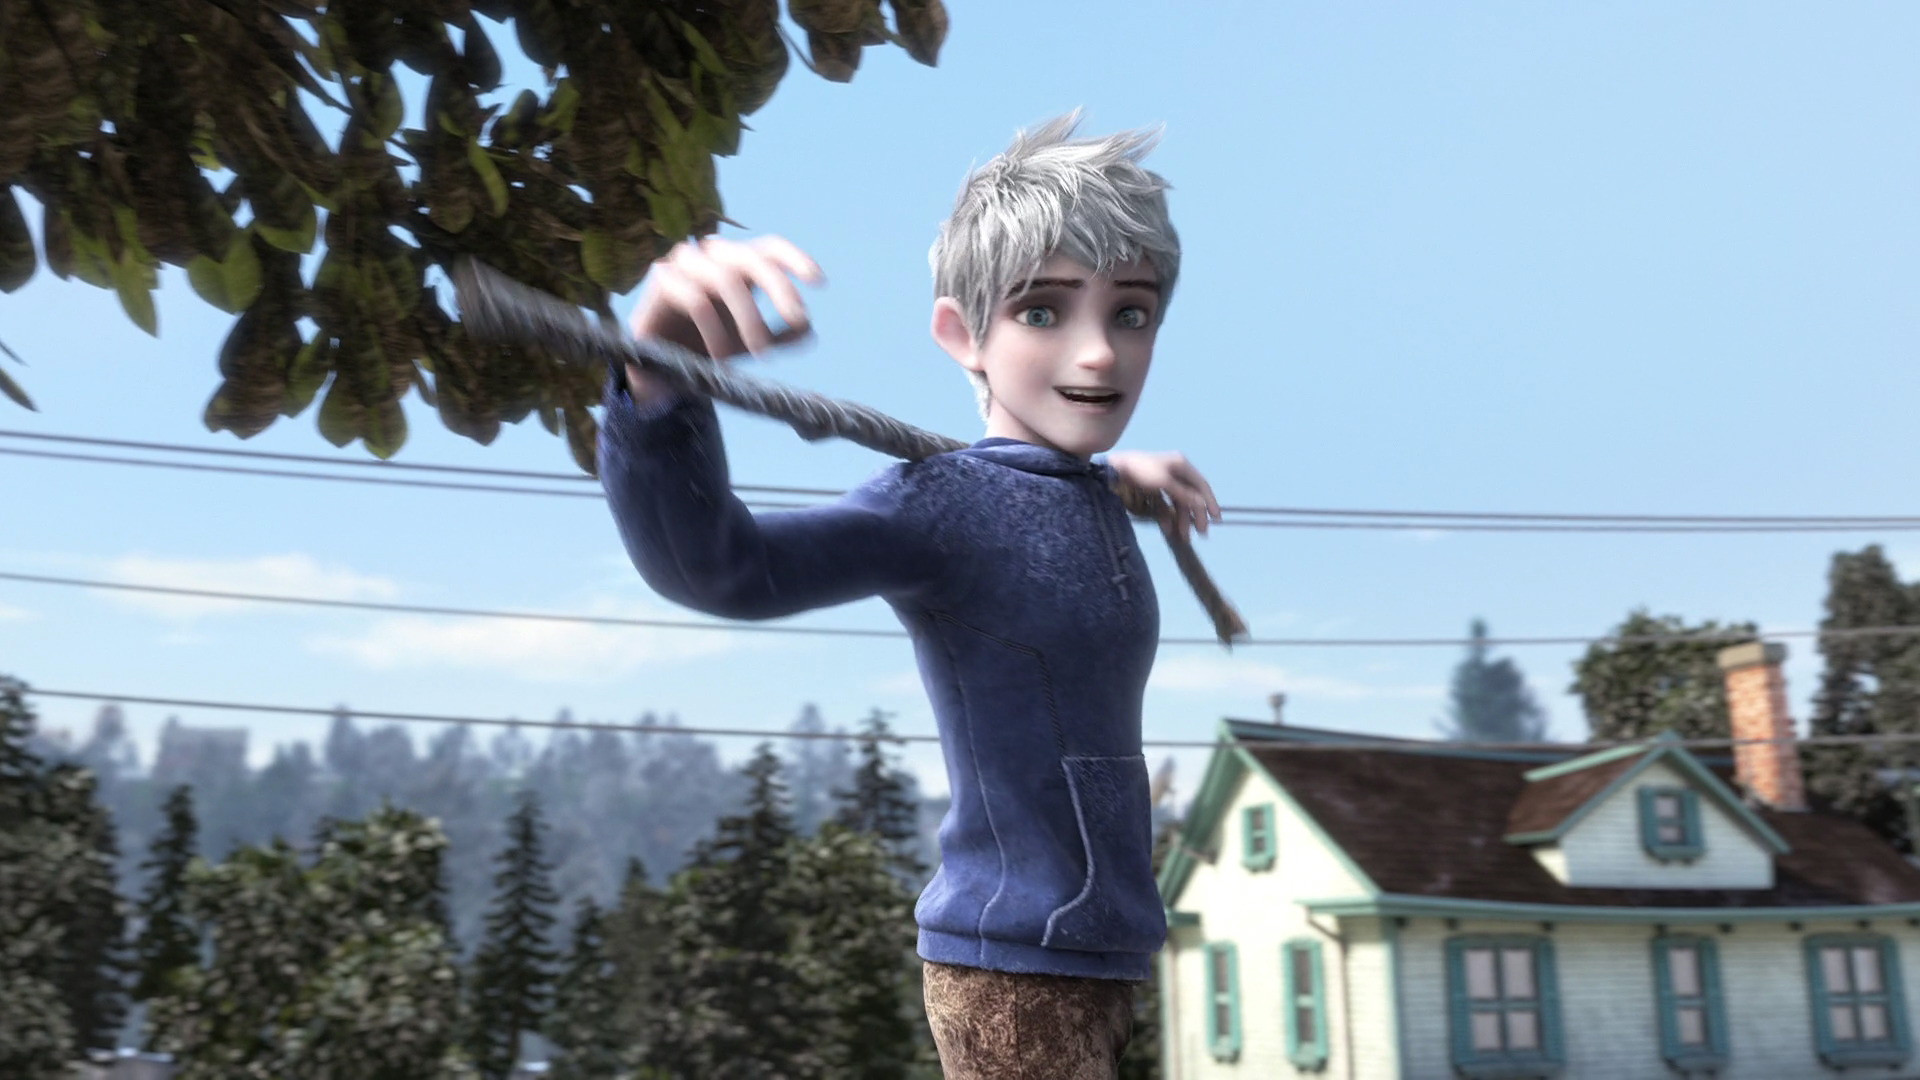 Jack frost wallpapers 66 images 1920x1080 thecheapjerseys Gallery